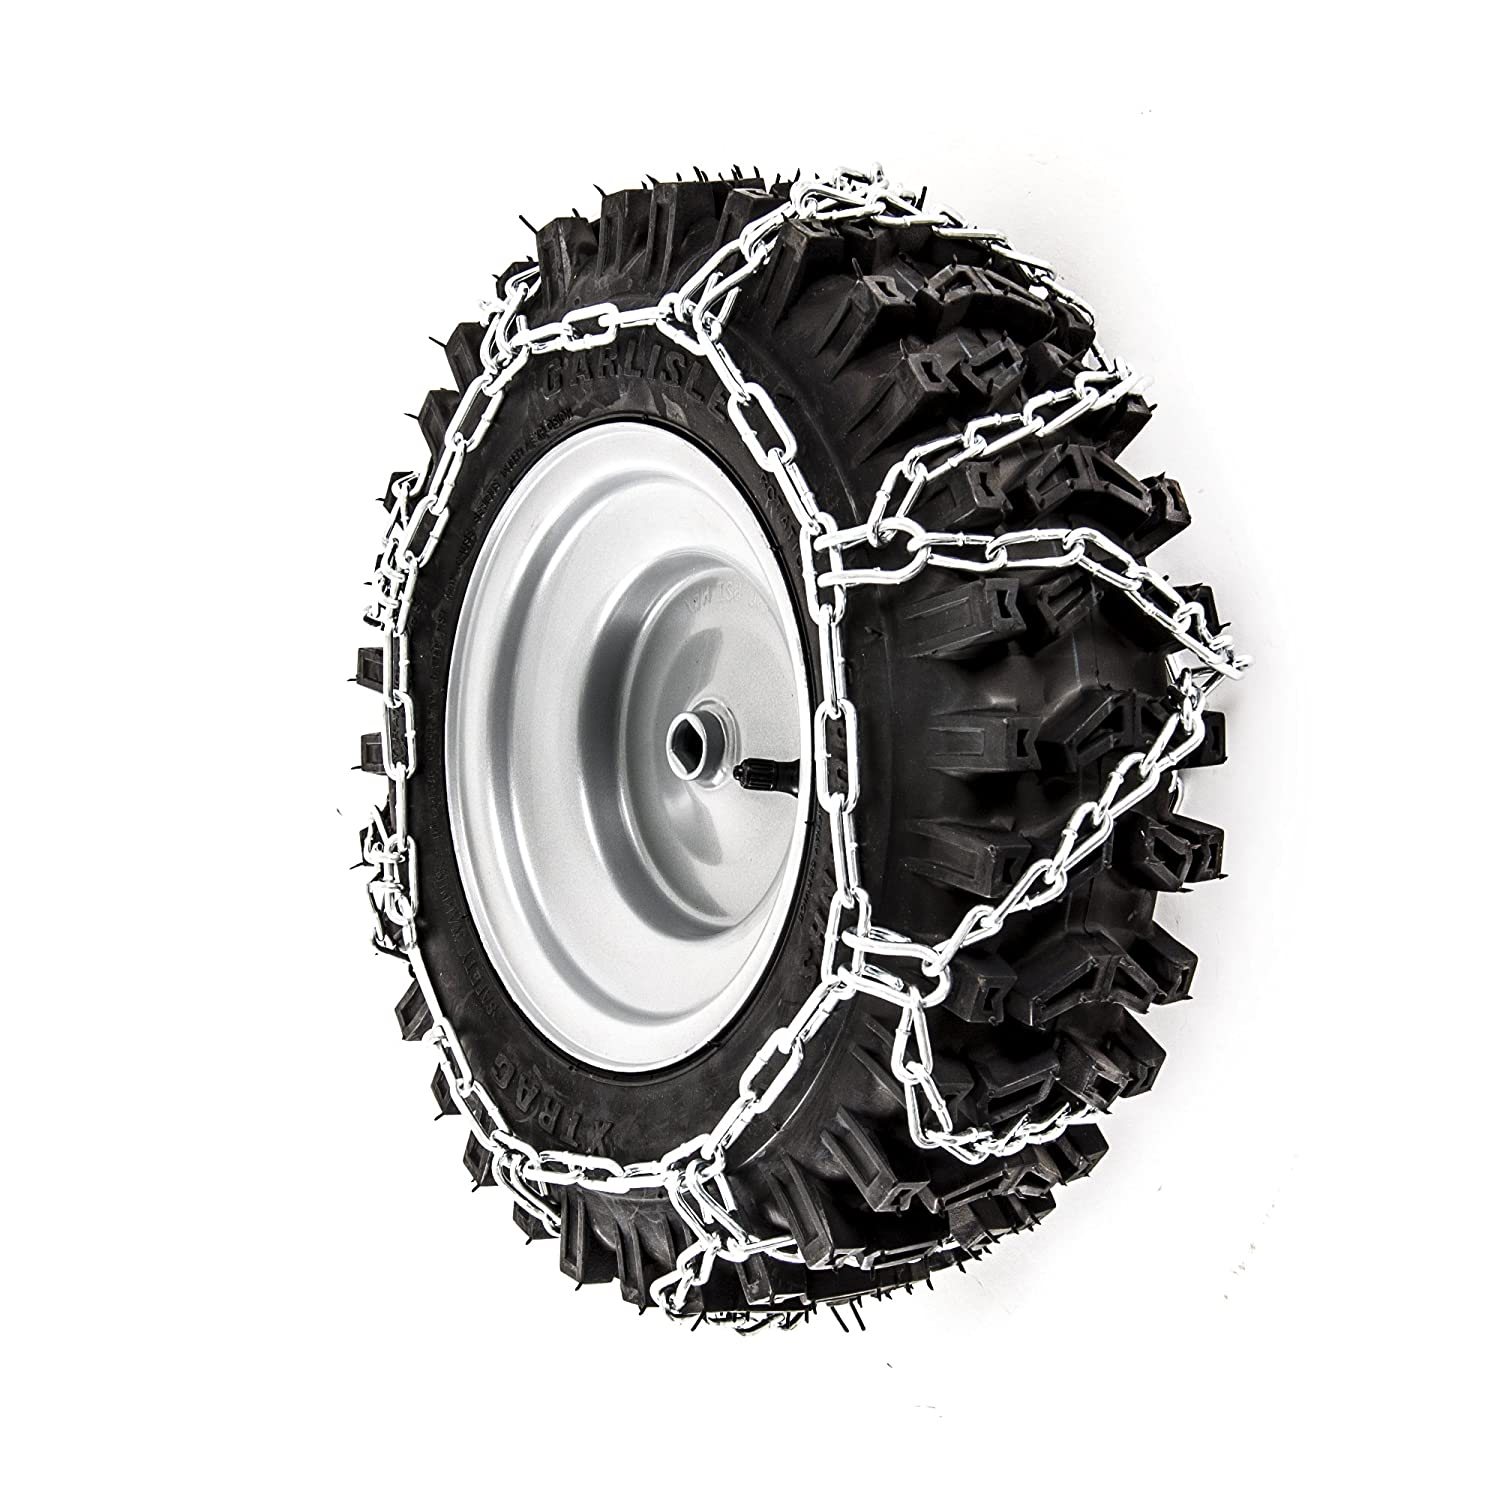 Arnold 490-241-0028 16 x 4.8-Inch Snow Thrower Tire Chains